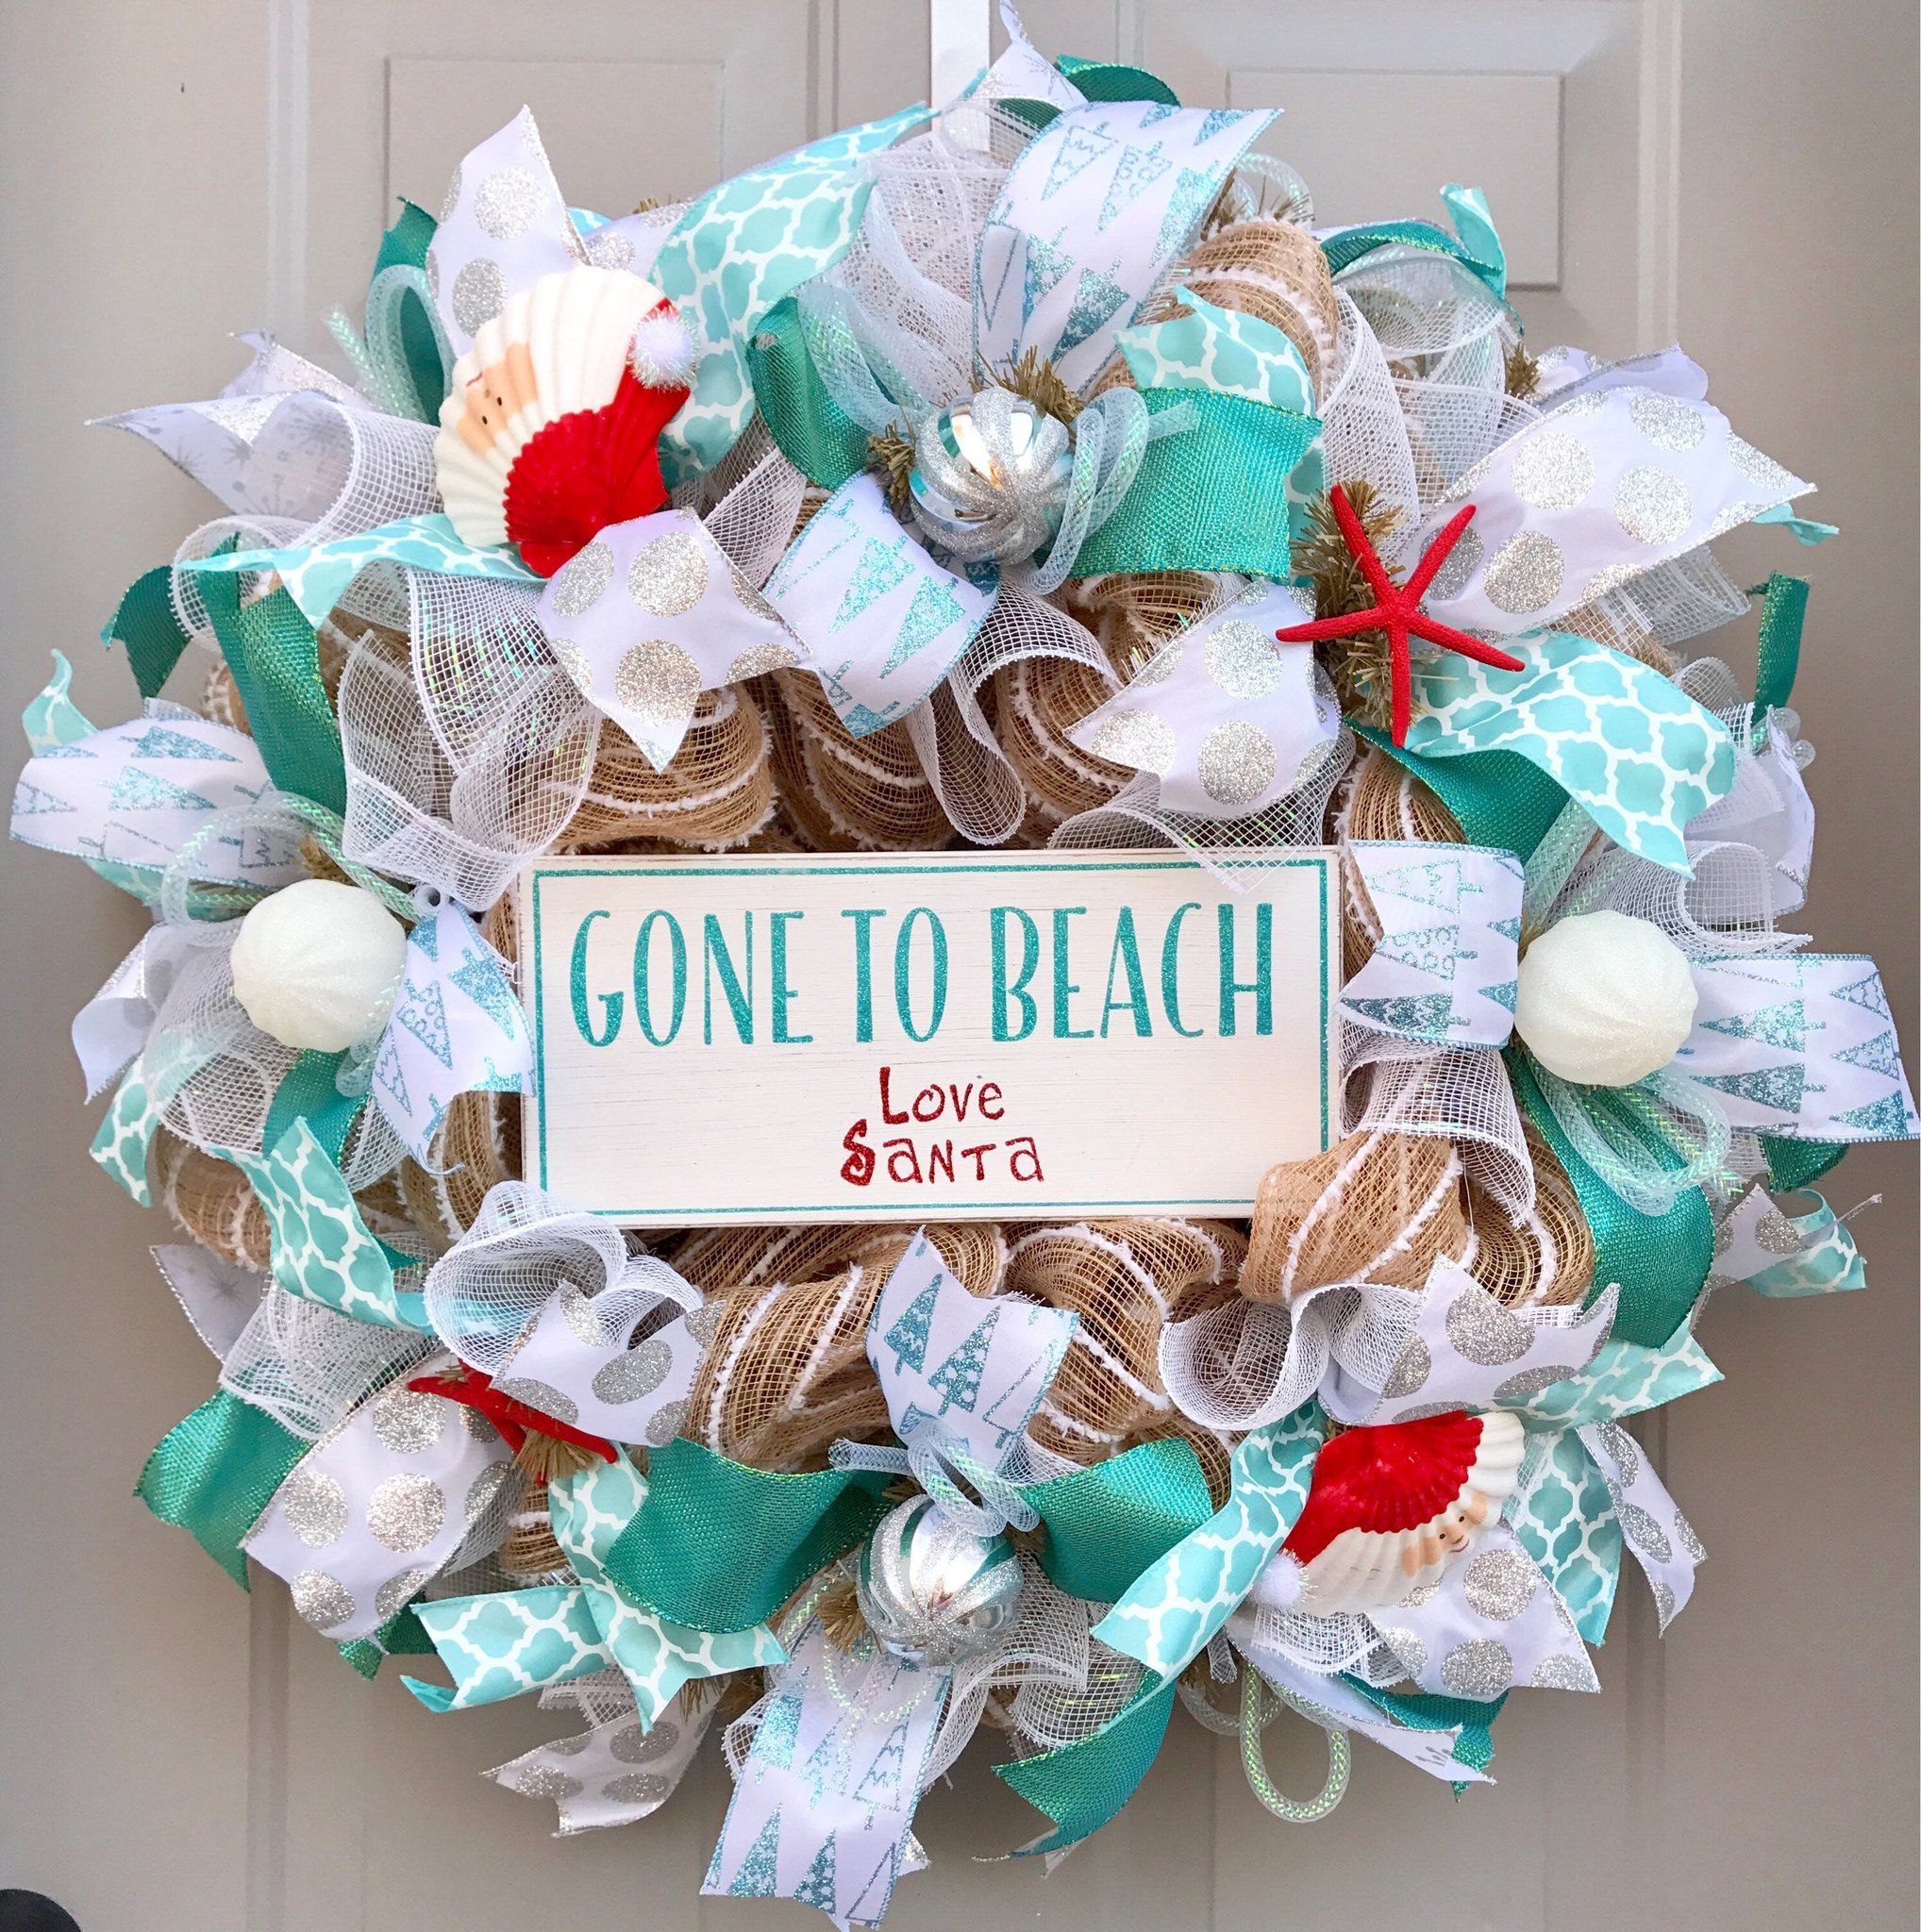 gone to beach love santa deco mesh wreath seashell wreath beach wrea beautifulmesh